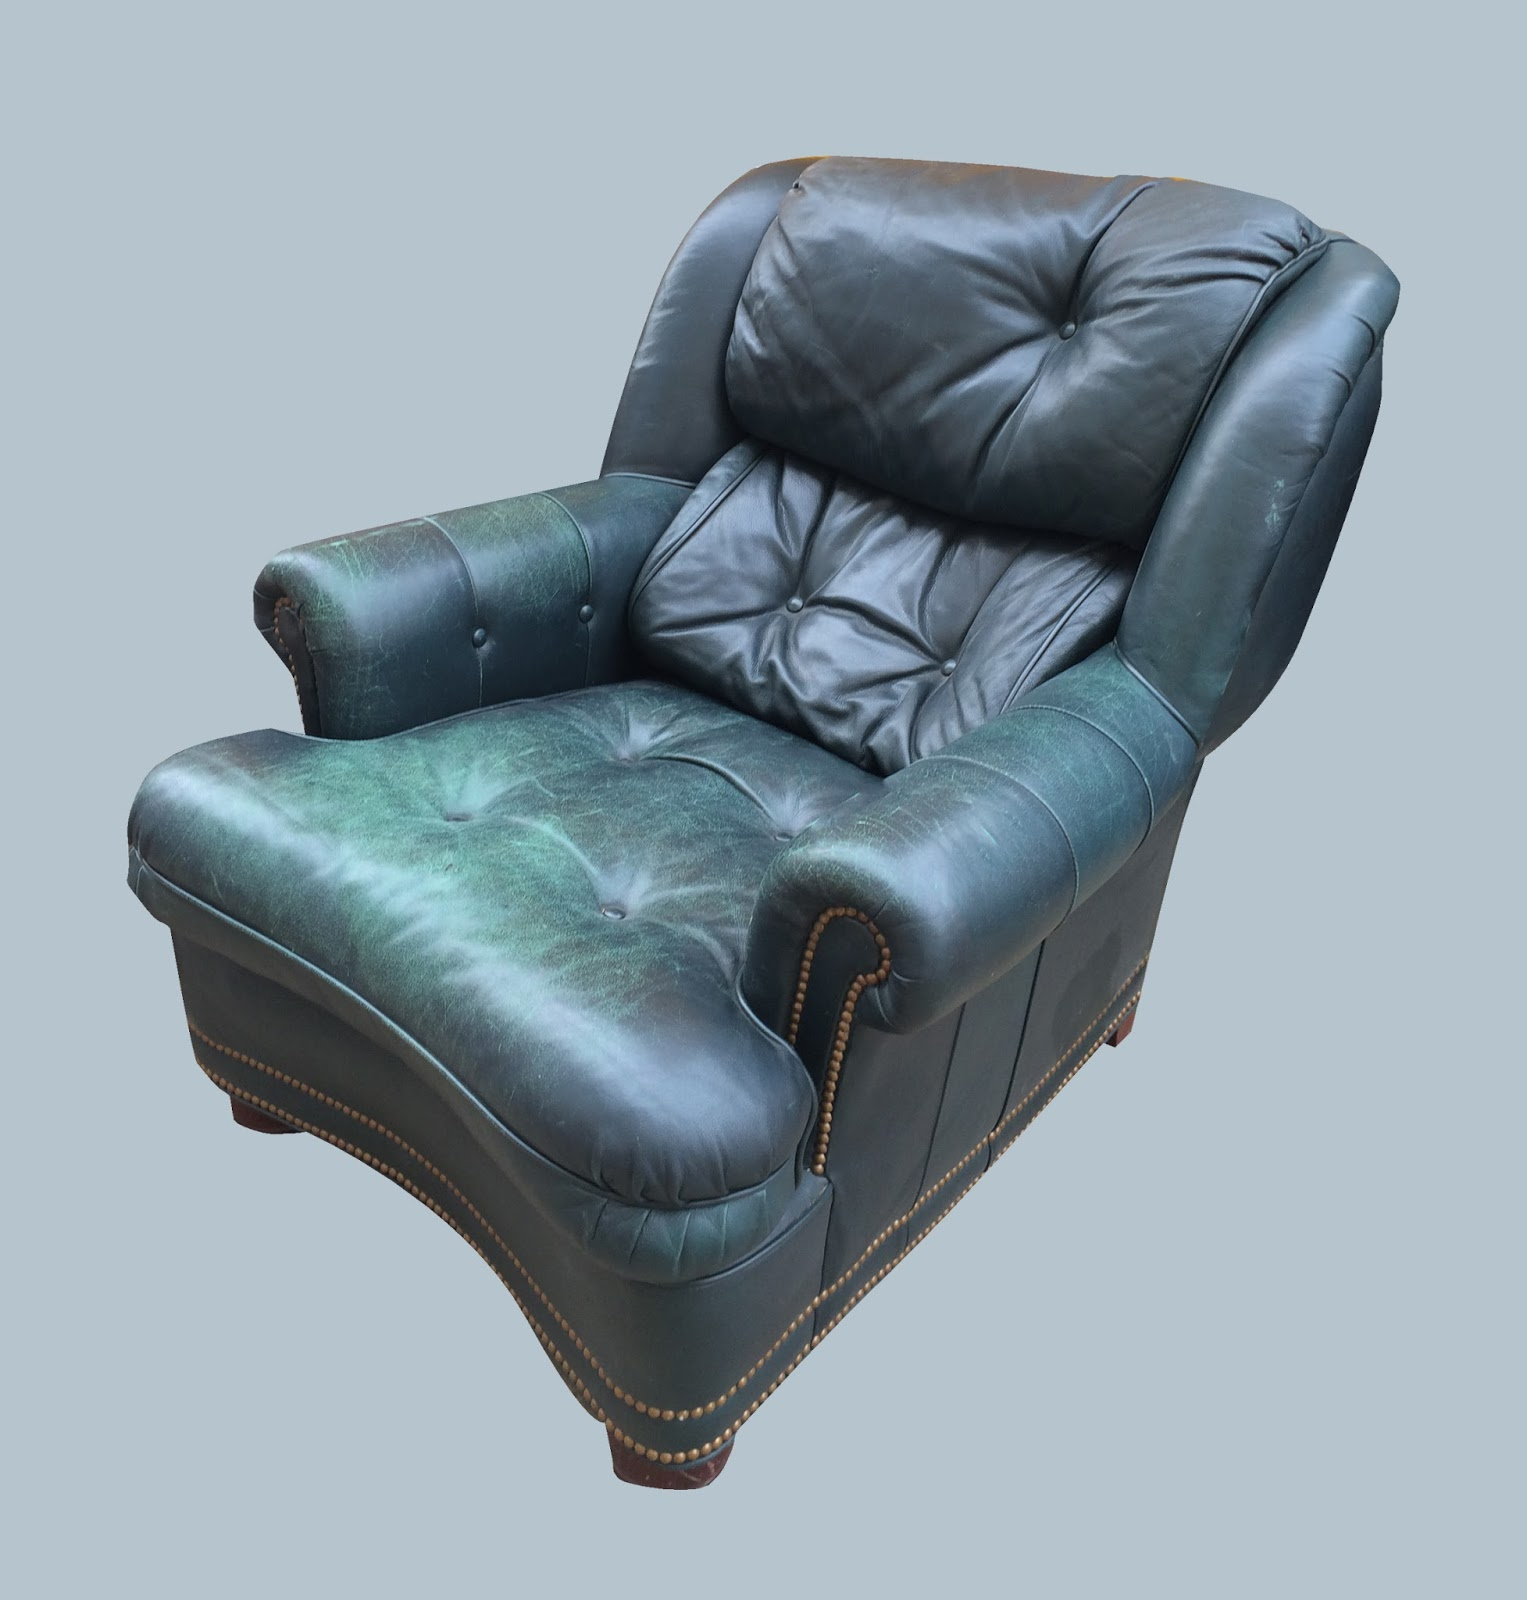 Dark Green Recliner Chair Covers By Sylwia Website Uhuru Furniture And Collectibles Leather